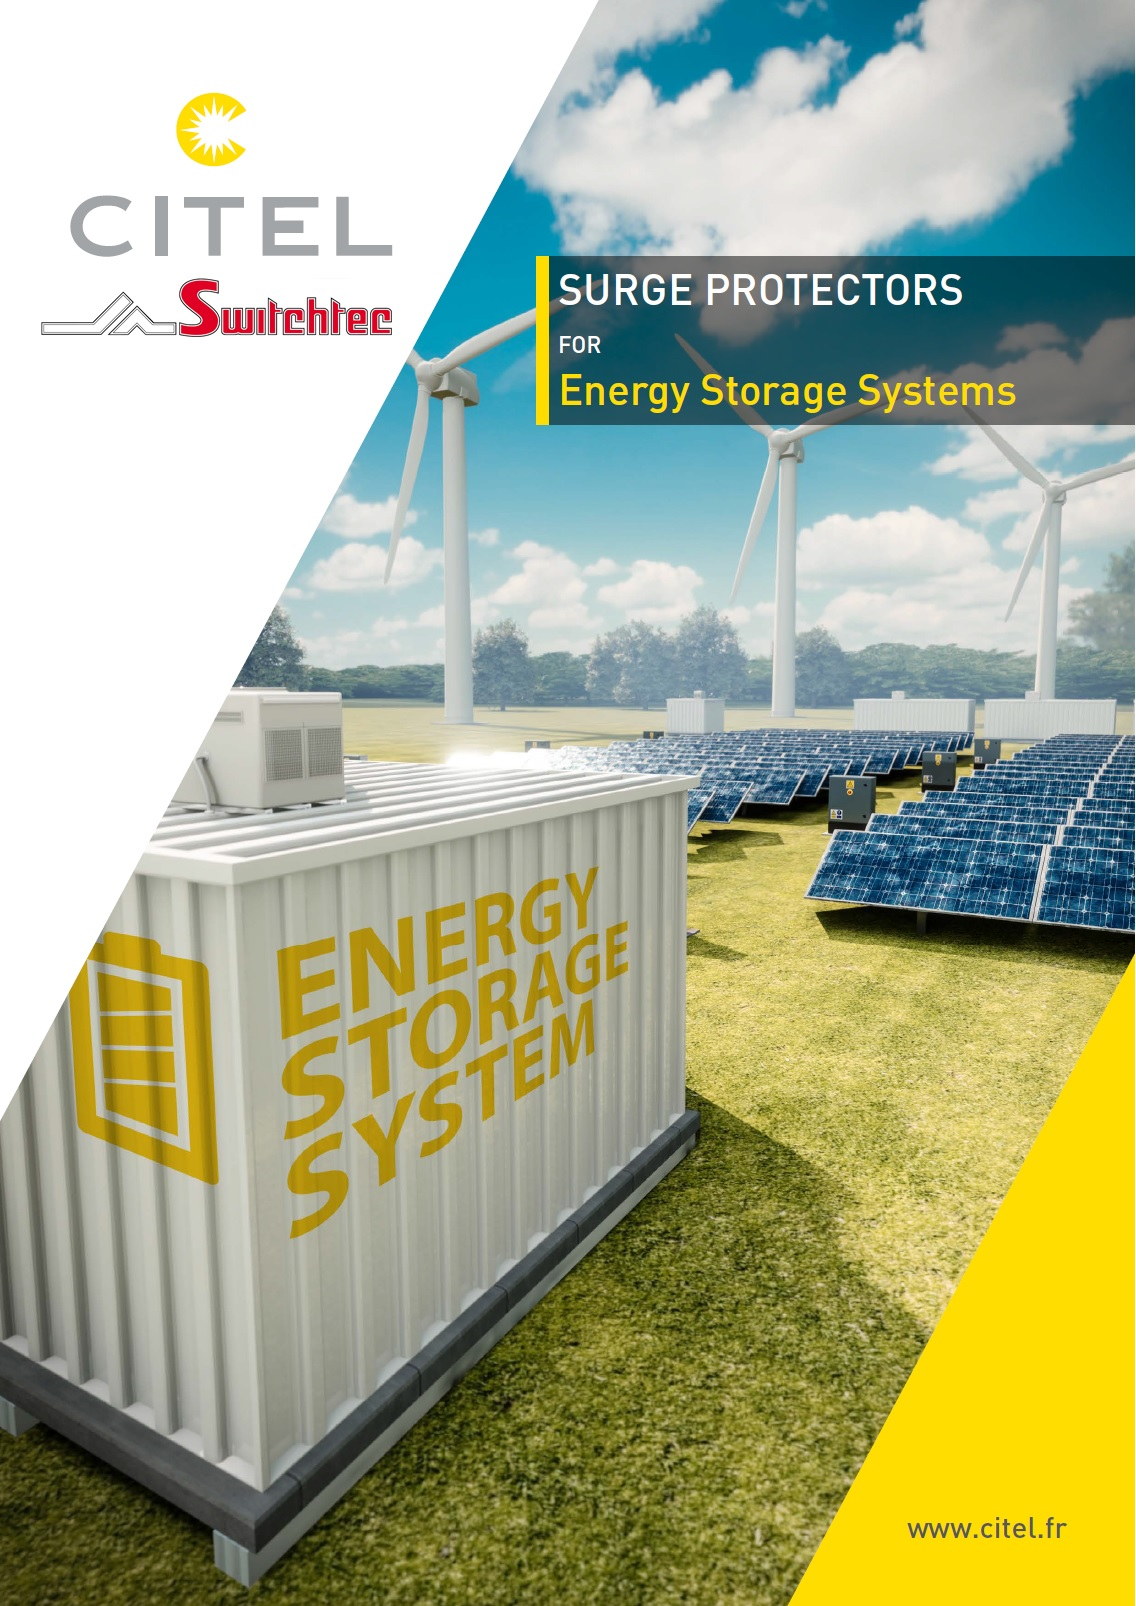 Surge Protectors for Energy Storage Systems